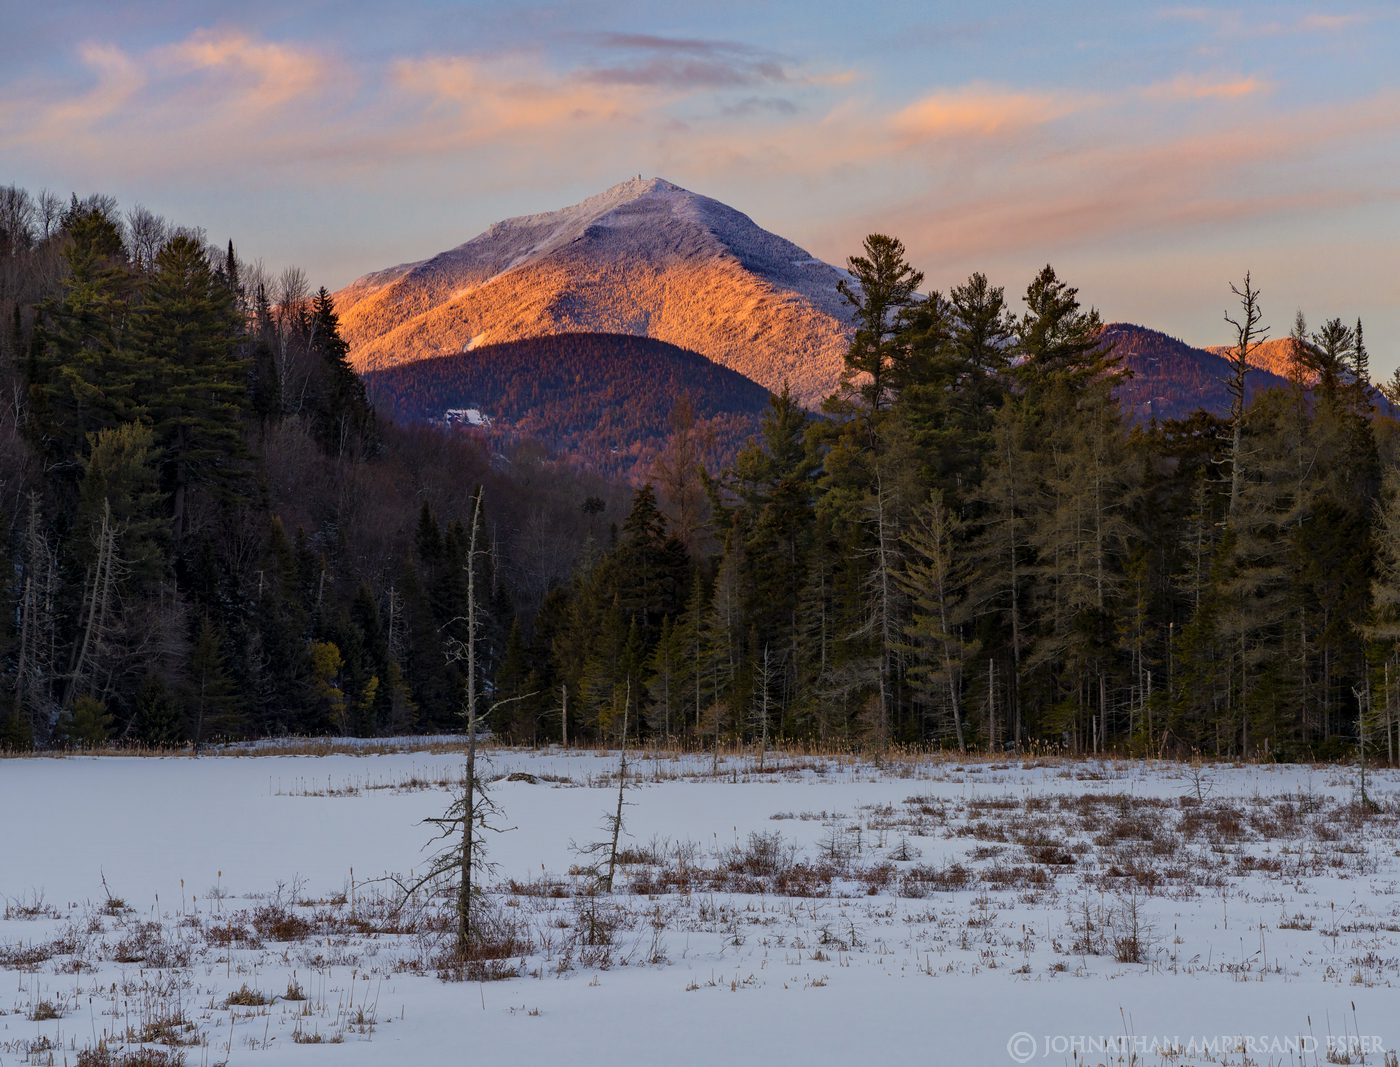 Whiteface Mt,Whiteface Mountain,Whiteface,winter,Whiteface Mt winter,alpenglow,March,2020,Adirondacks,sunset,light,Cherry Patch...